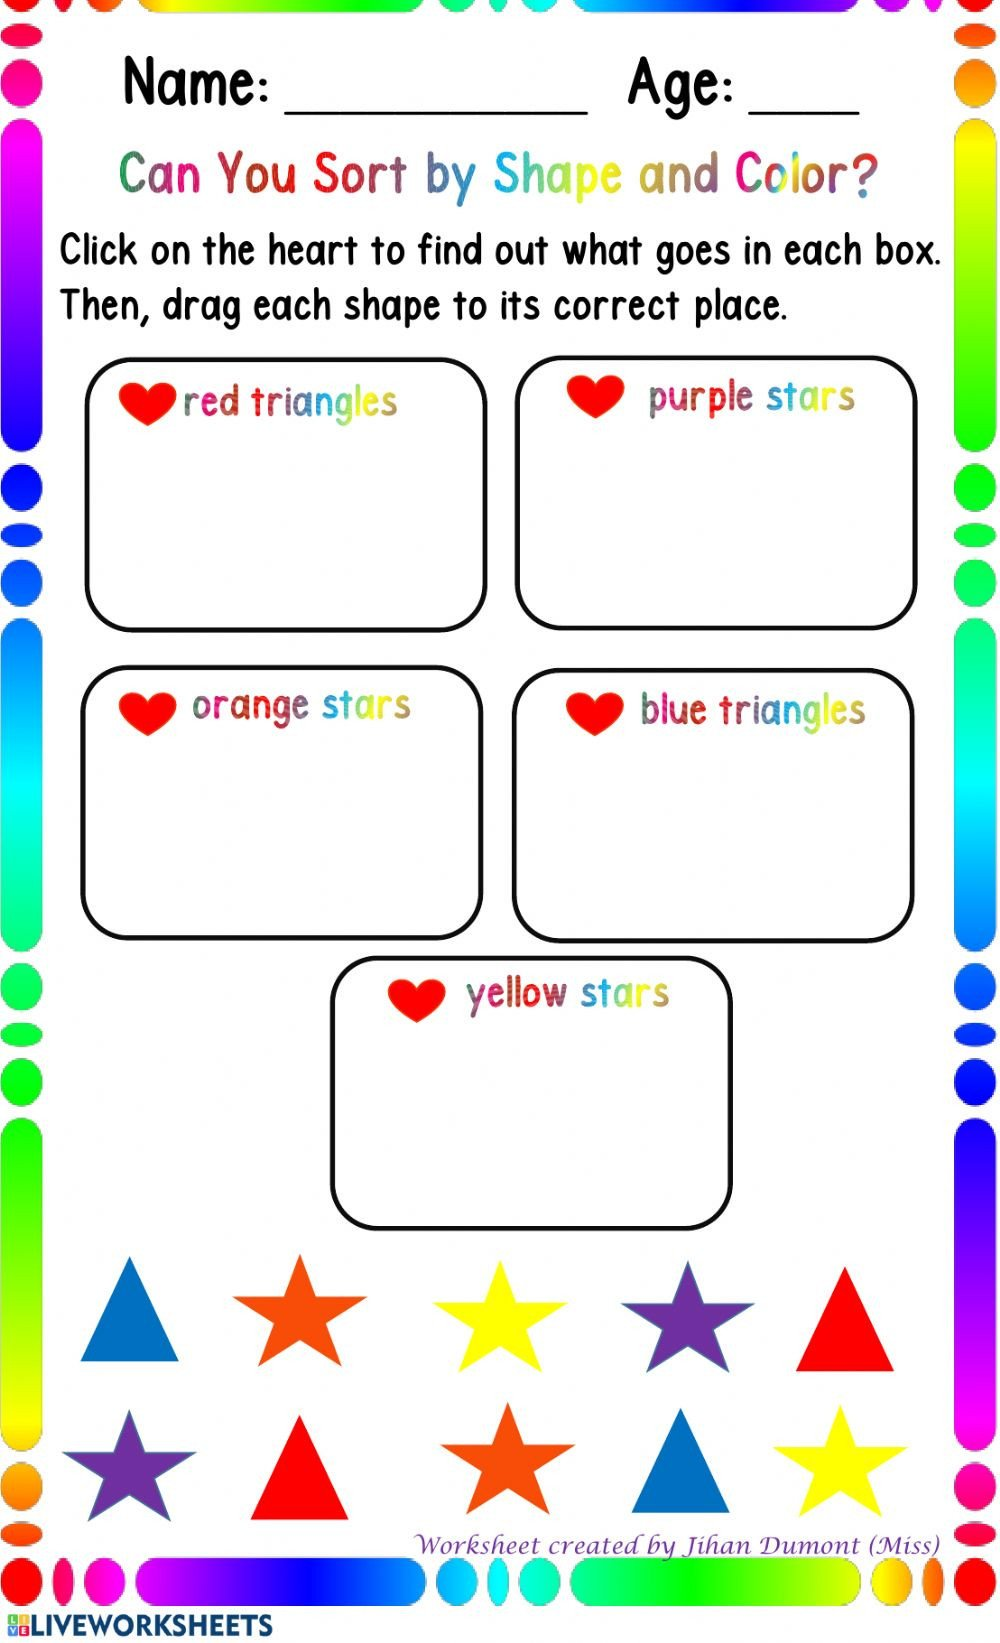 Sorting Shapes Worksheets sorting by Color and Shape Interactive Worksheet